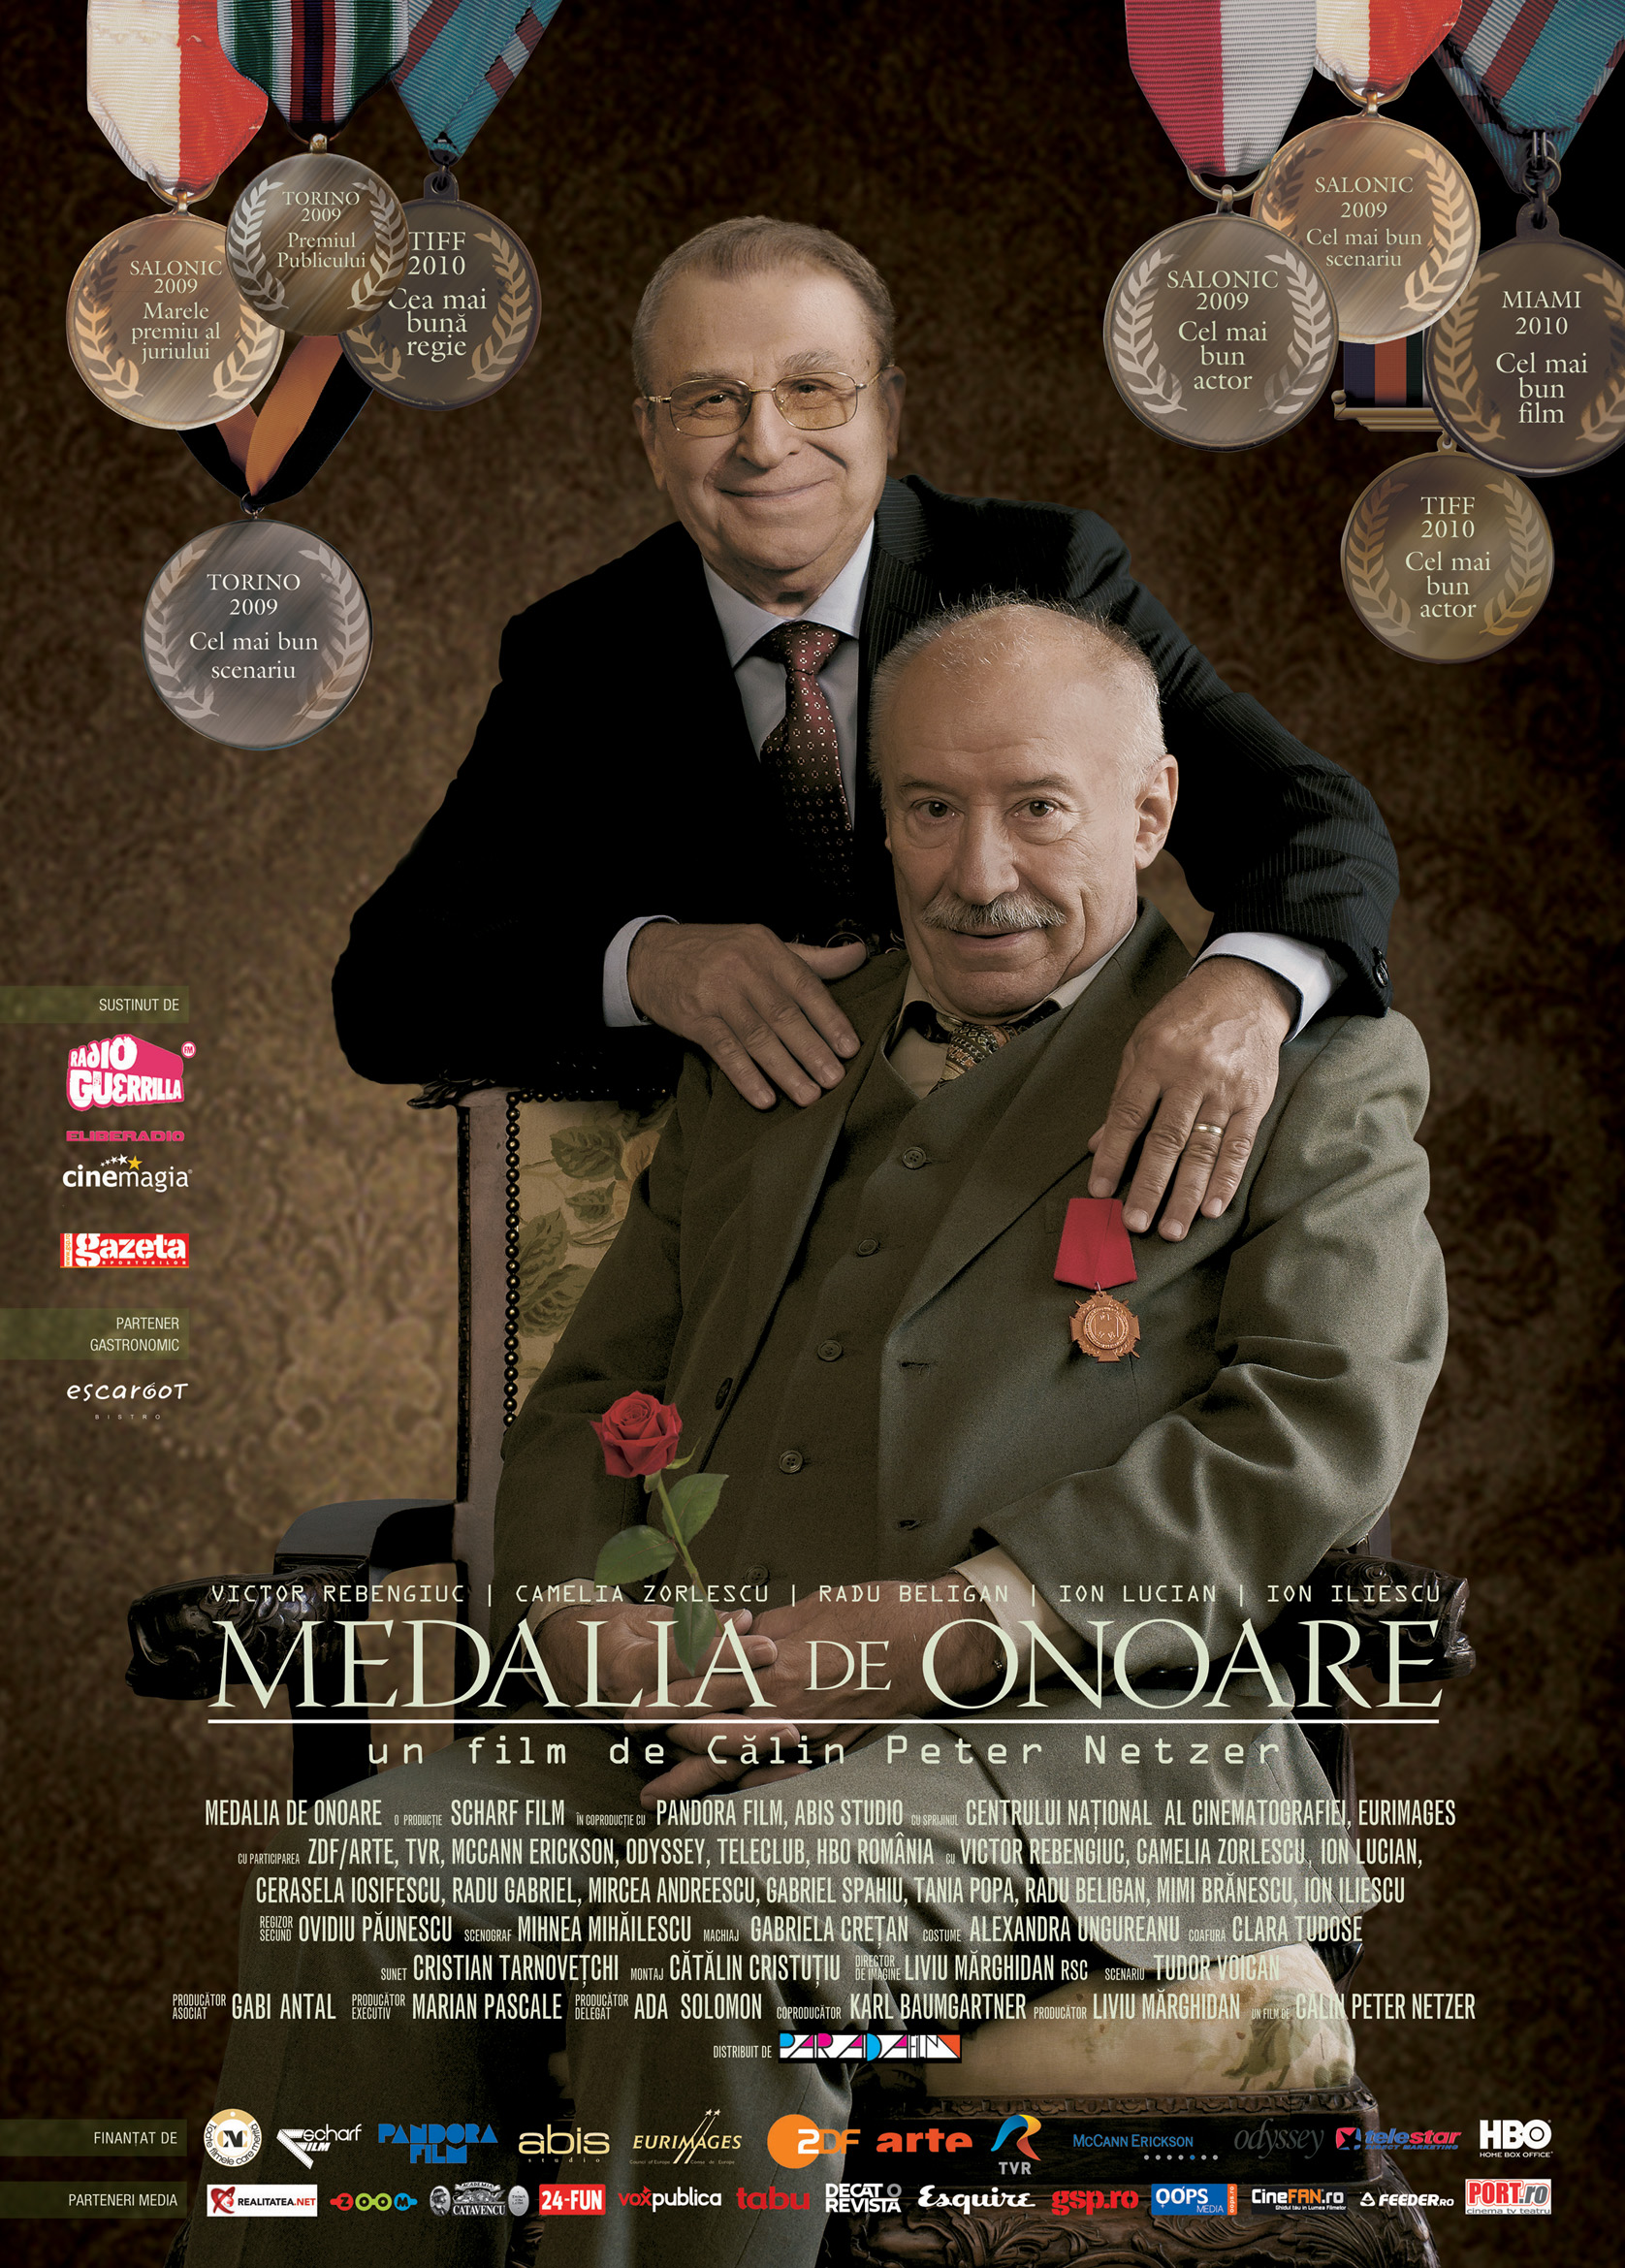 Medalia de onoare (2009) - Photo